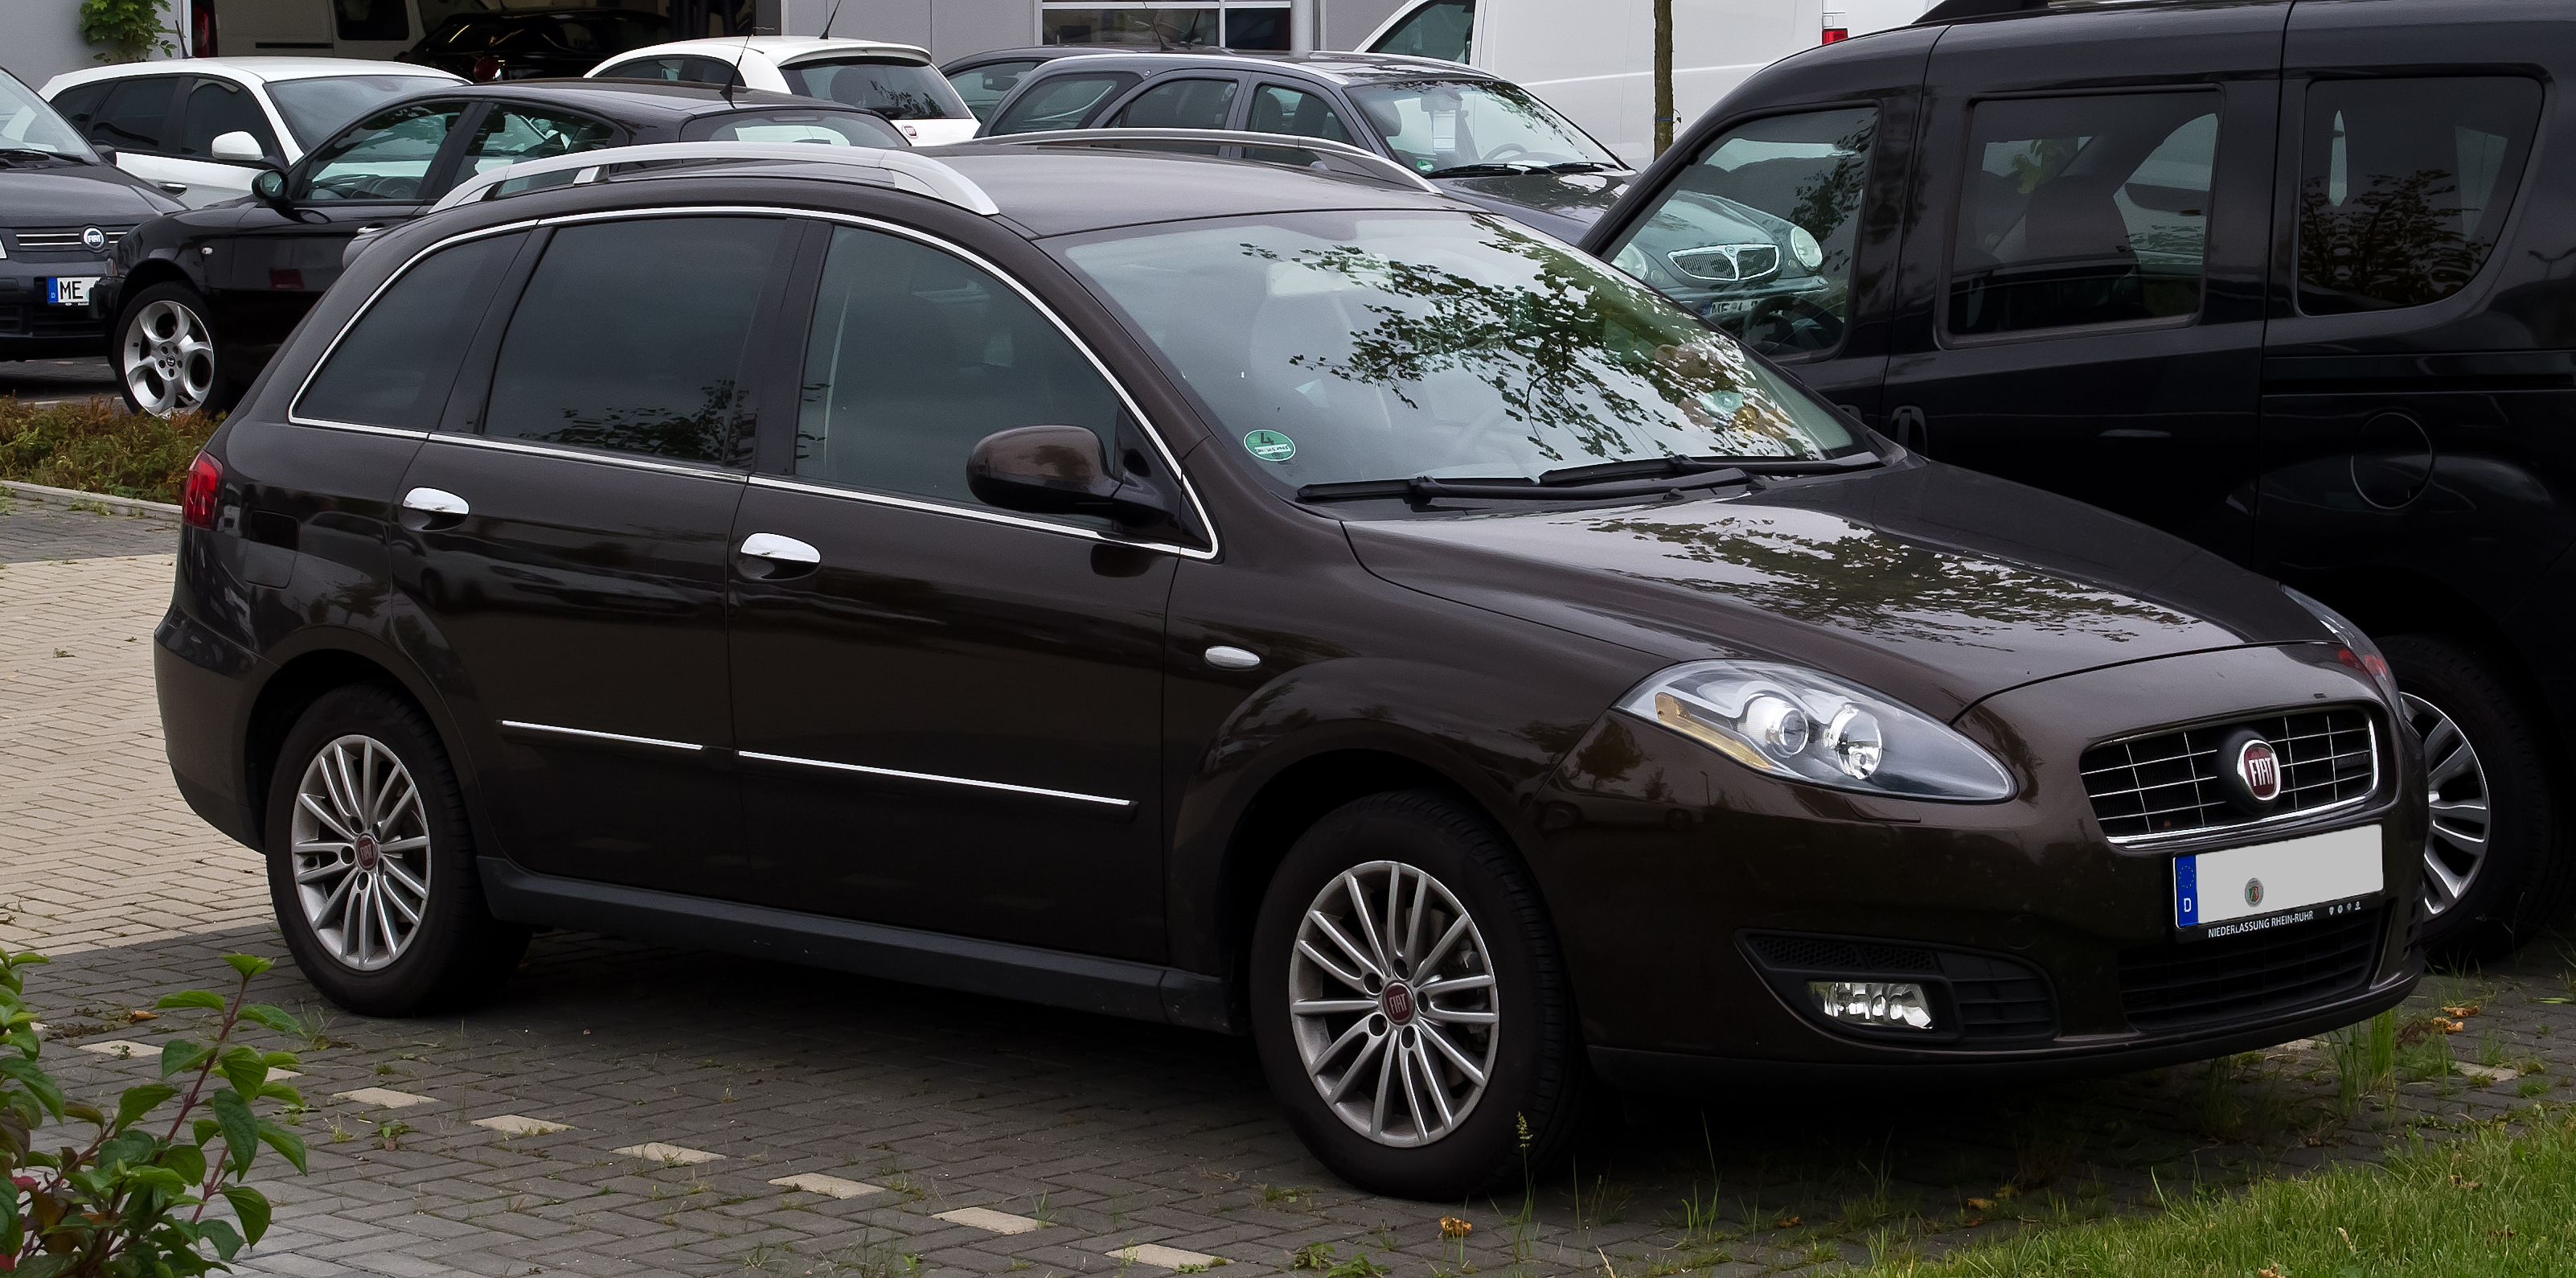 file fiat croma ii facelift frontansicht 17 september 2012 d wikimedia. Black Bedroom Furniture Sets. Home Design Ideas